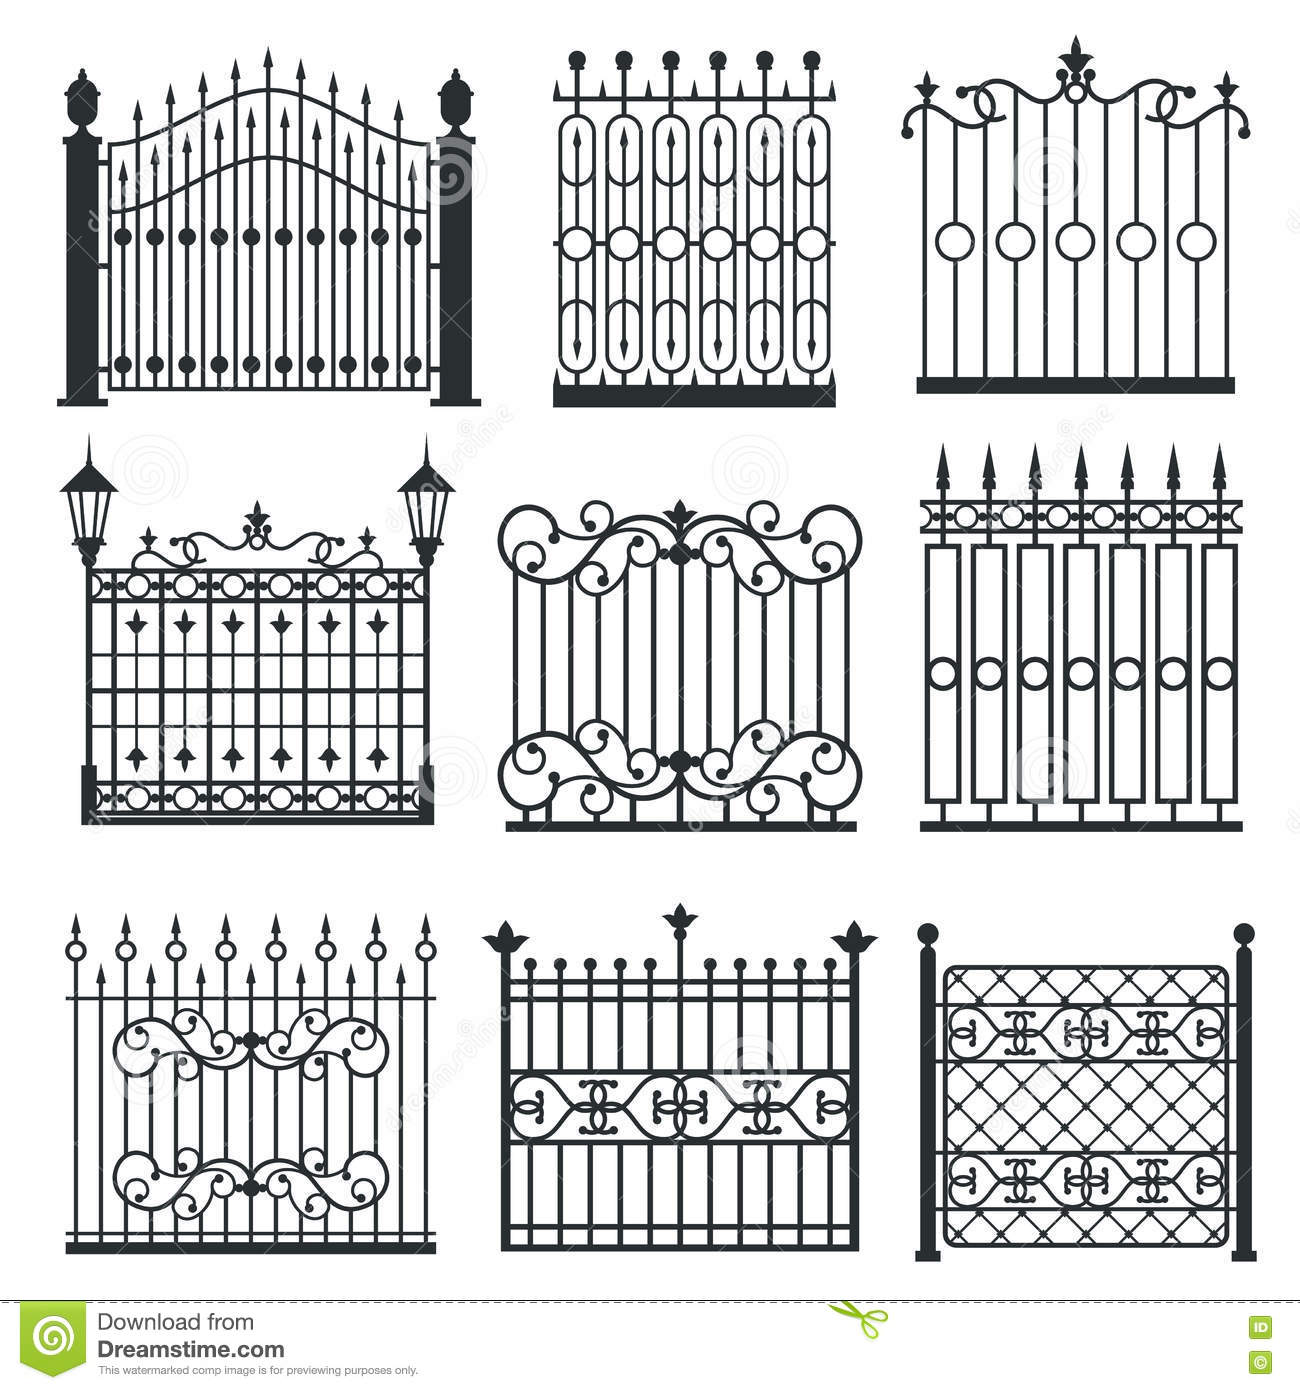 Metal Iron Gates Grilles Fences Vector Set Cartoon